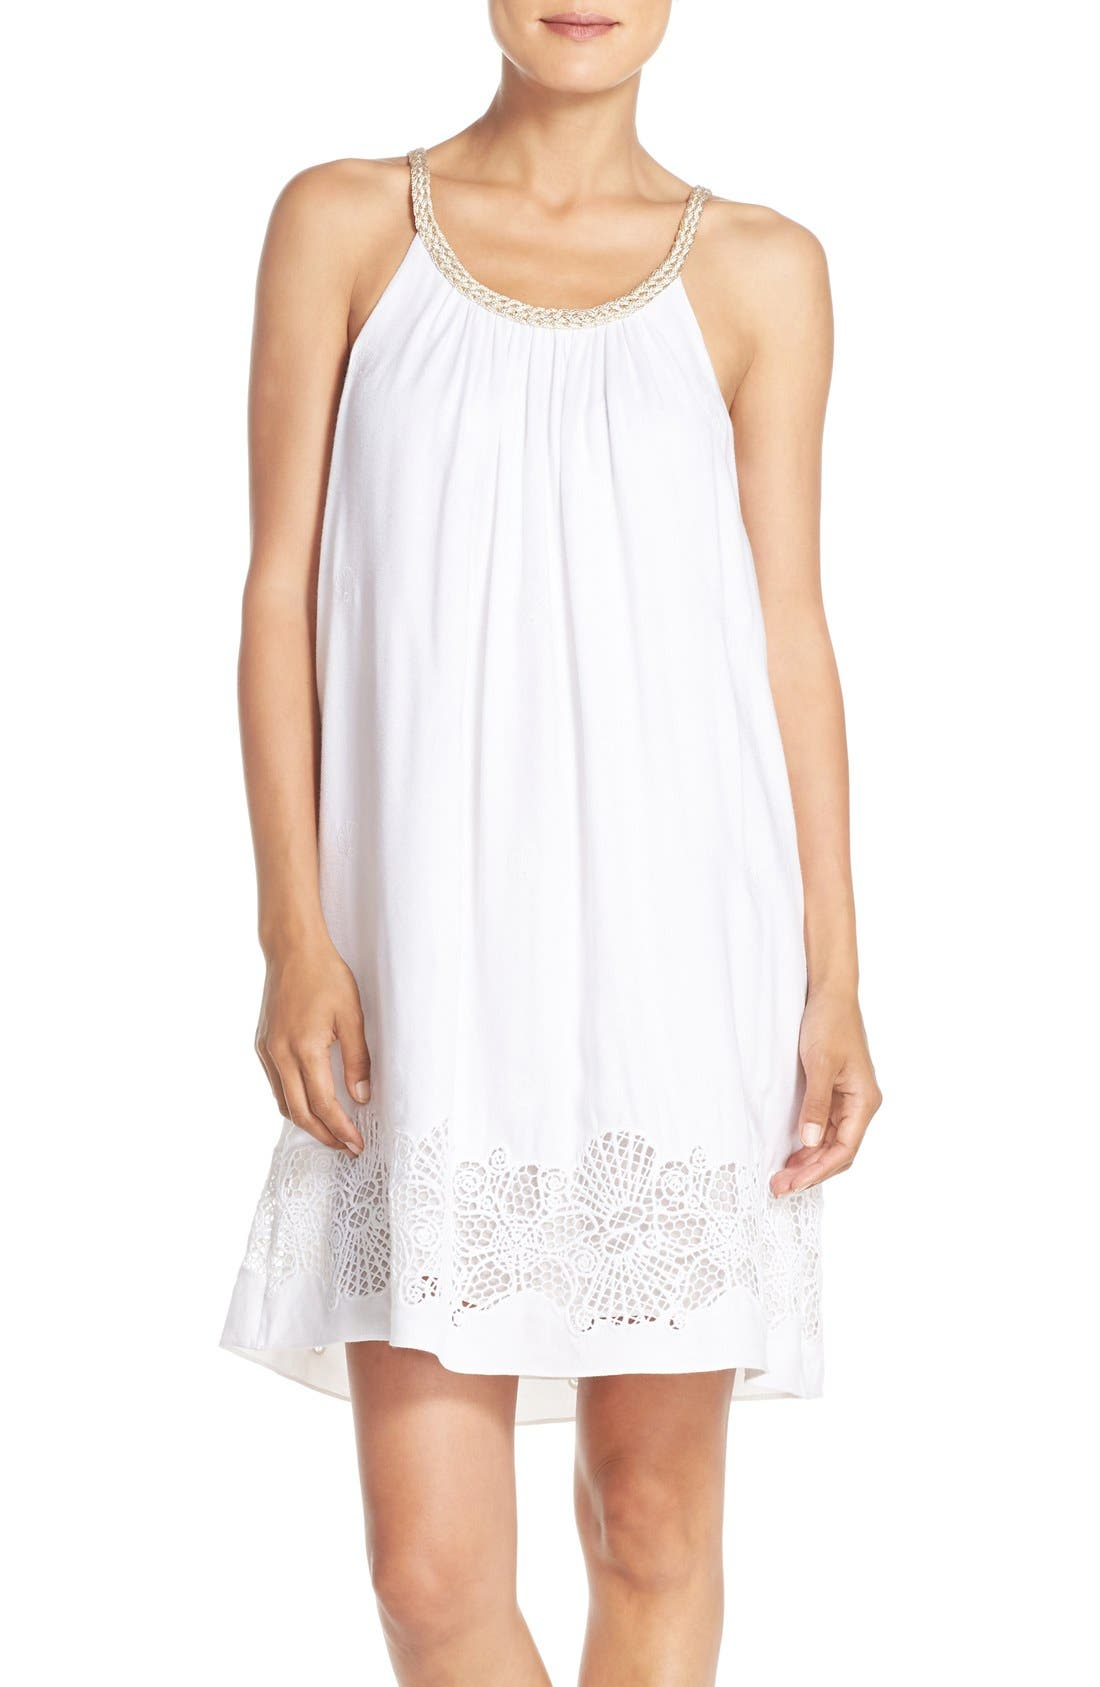 Alternate Image 1 Selected - Lilly Pulitzer® 'Sienna' Embroidered Swing Dress